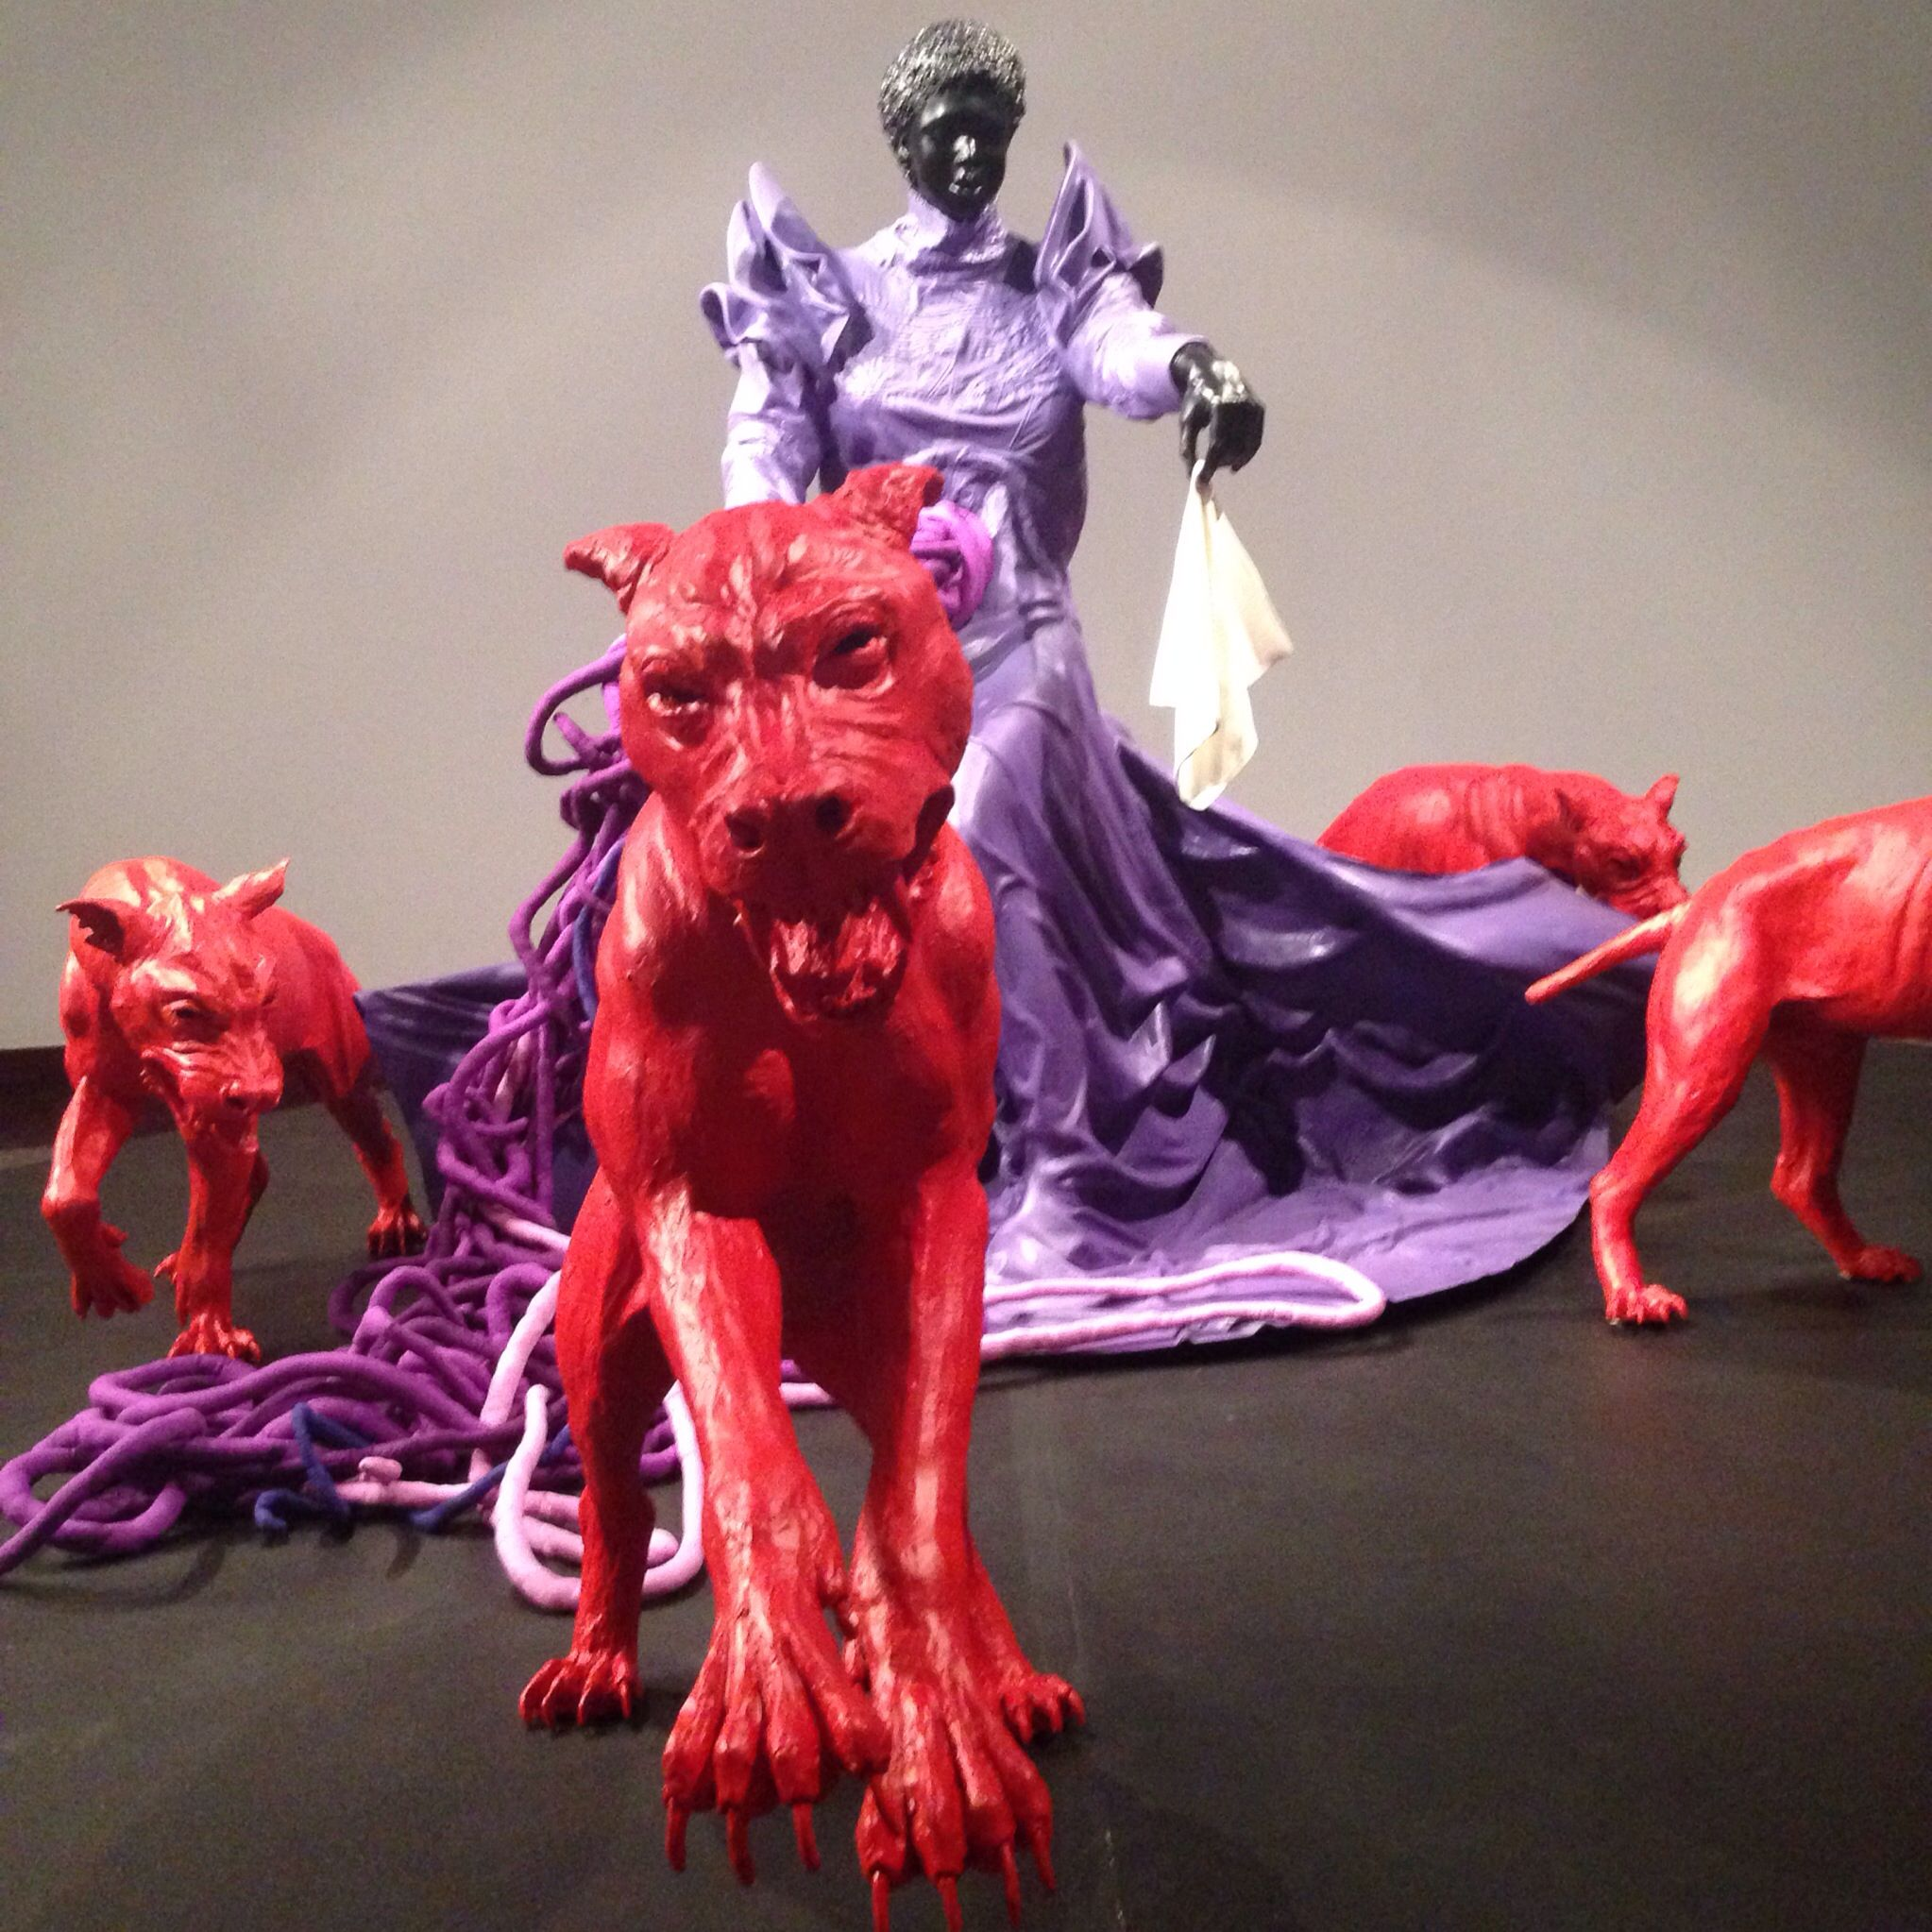 Mary Sibande' ' Purple Govern' Standard Bank African.love Art